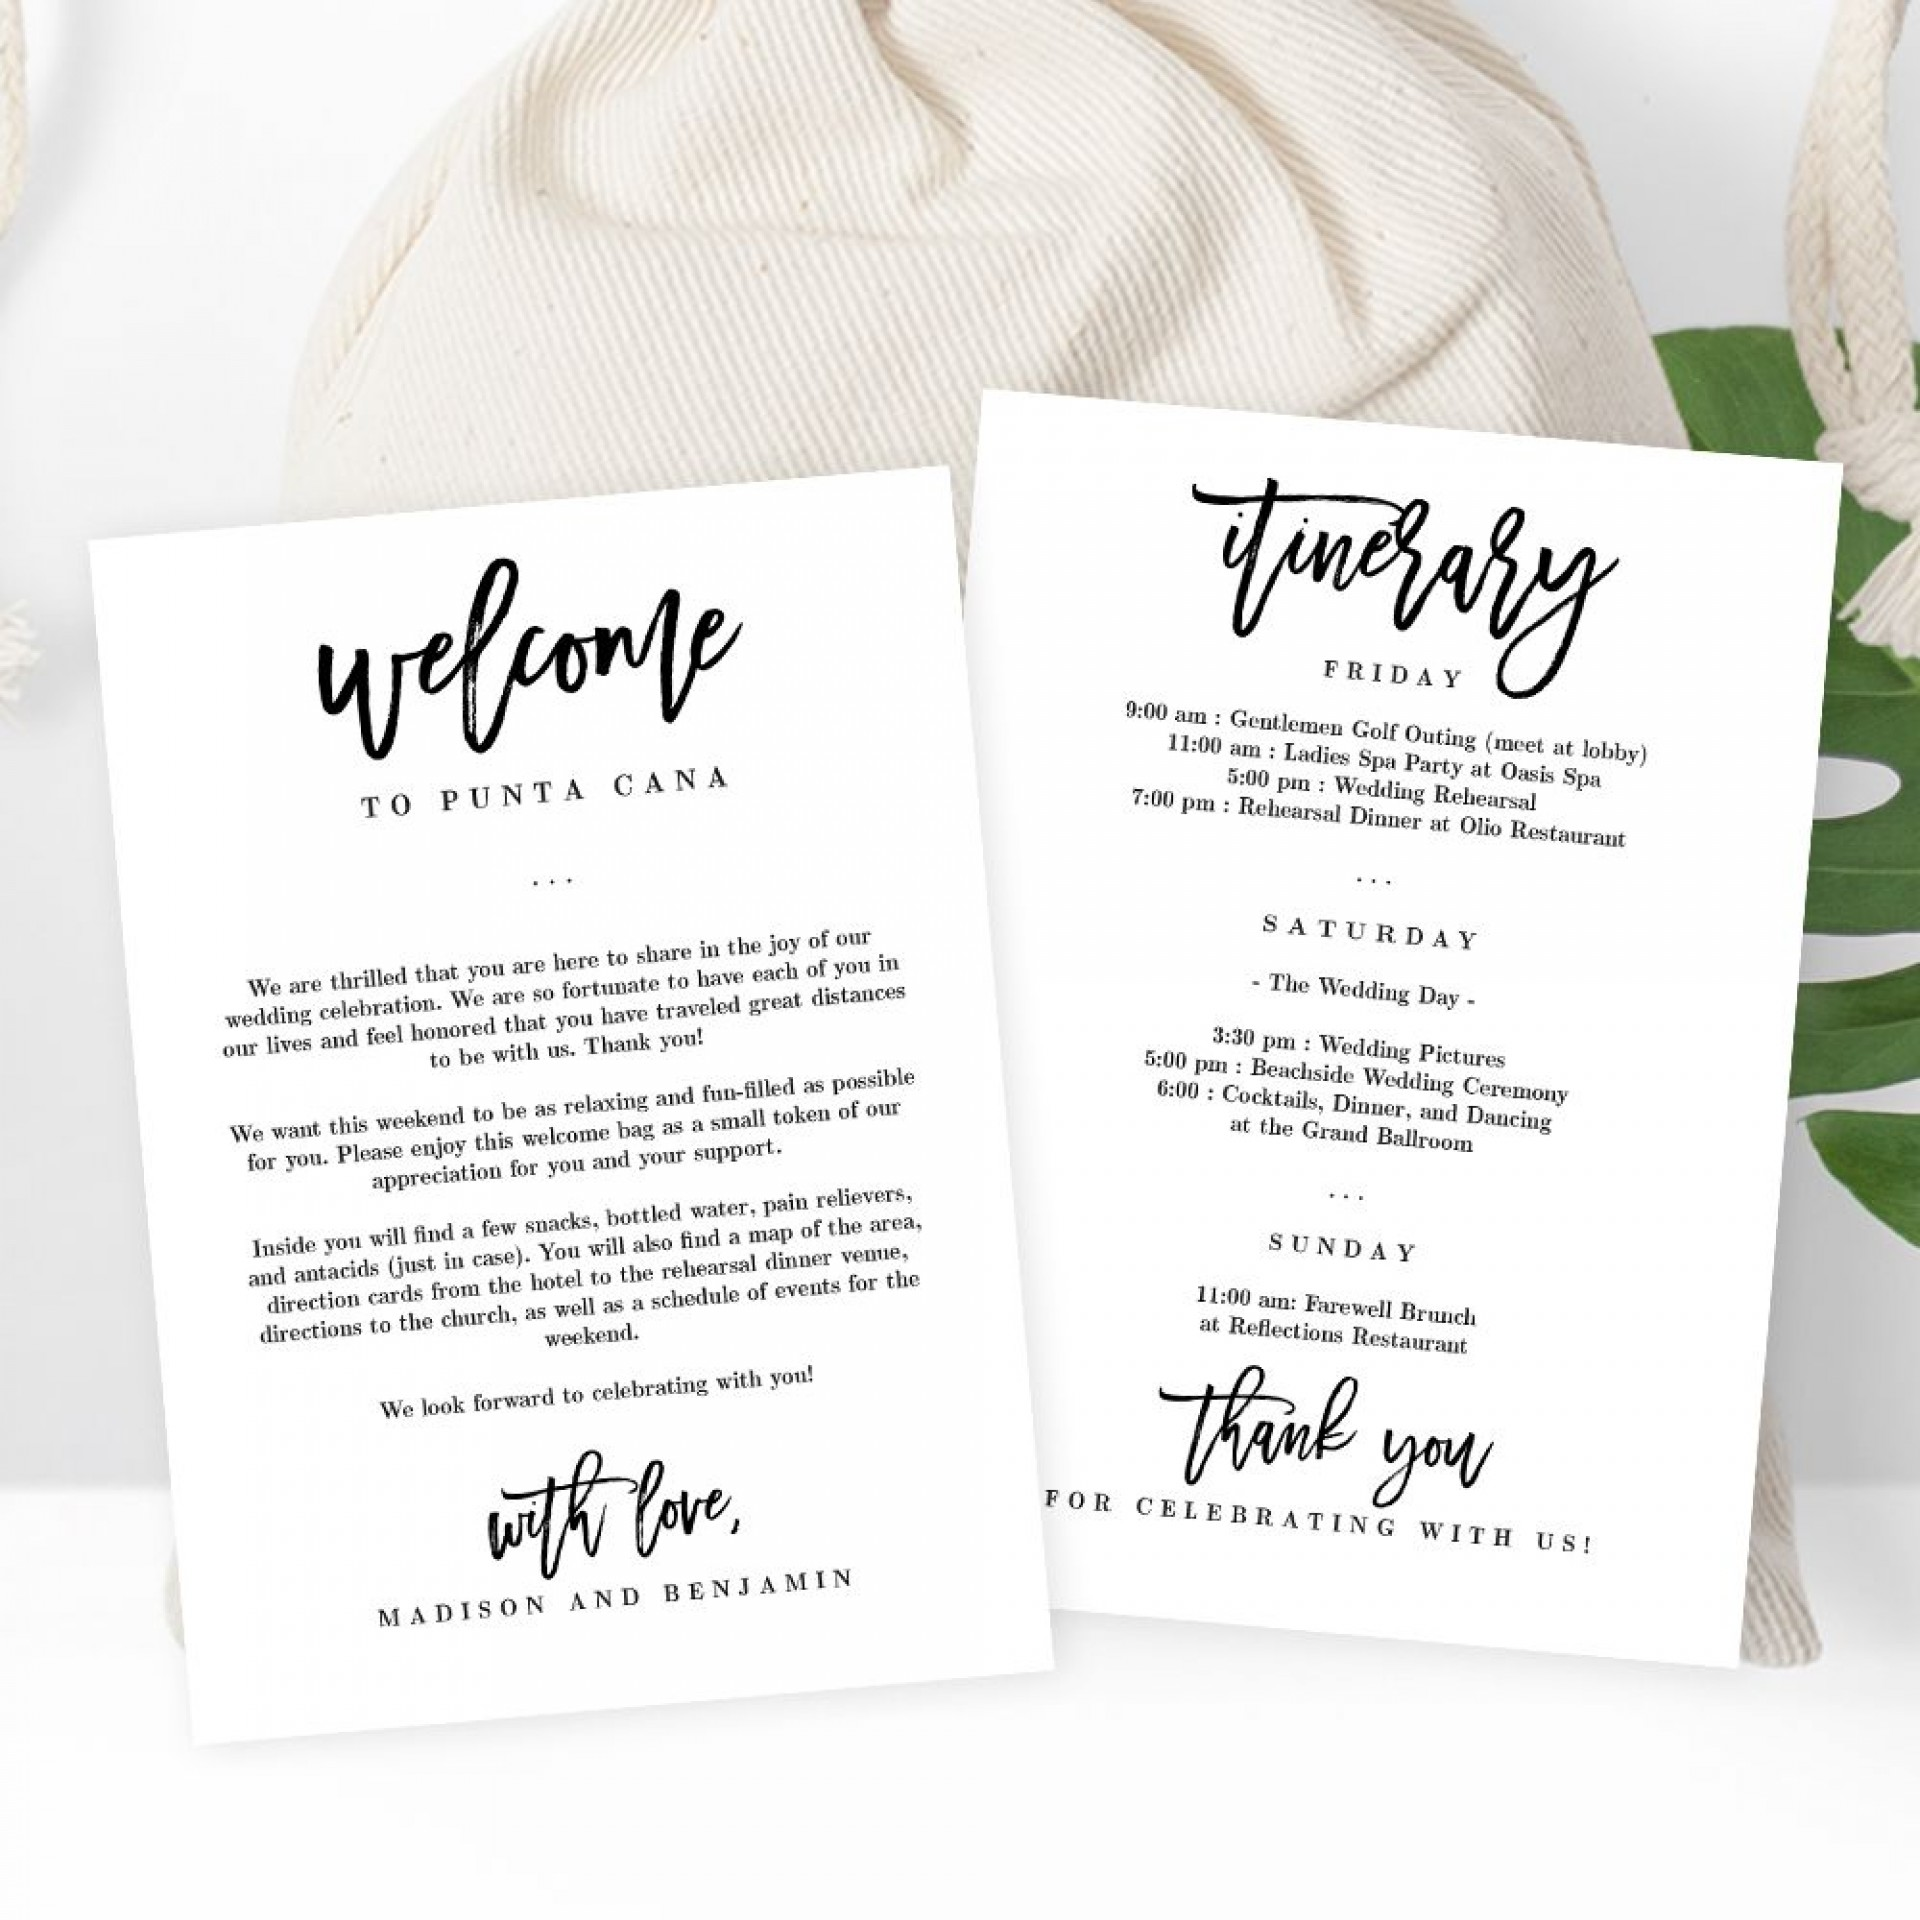 003 Stirring Wedding Welcome Bag Letter Template Image  Free1920